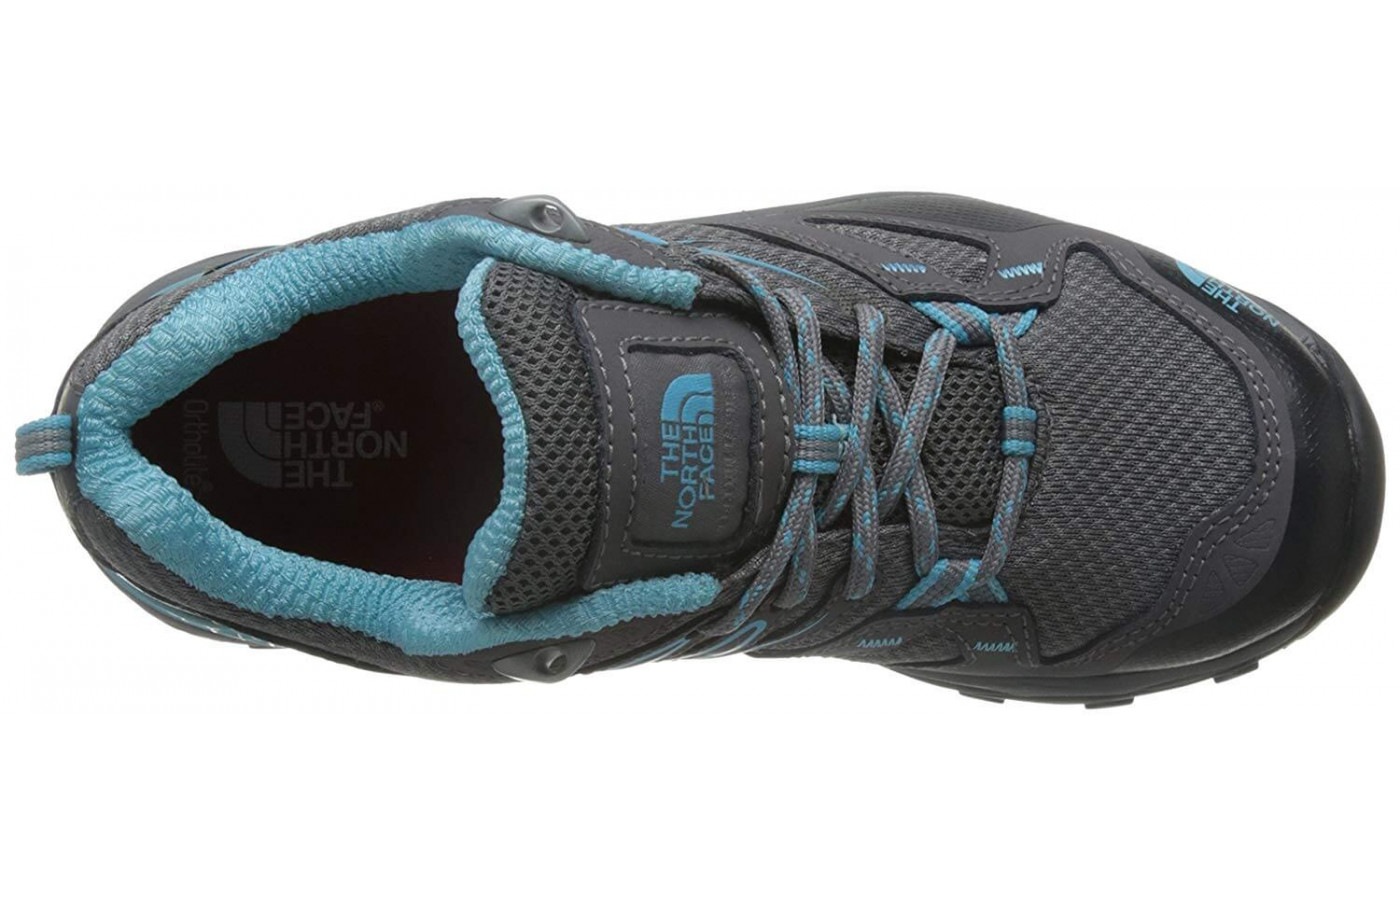 Mesh panels and PU-coated leather forms the Hedgehog Fastpack GTX's upper